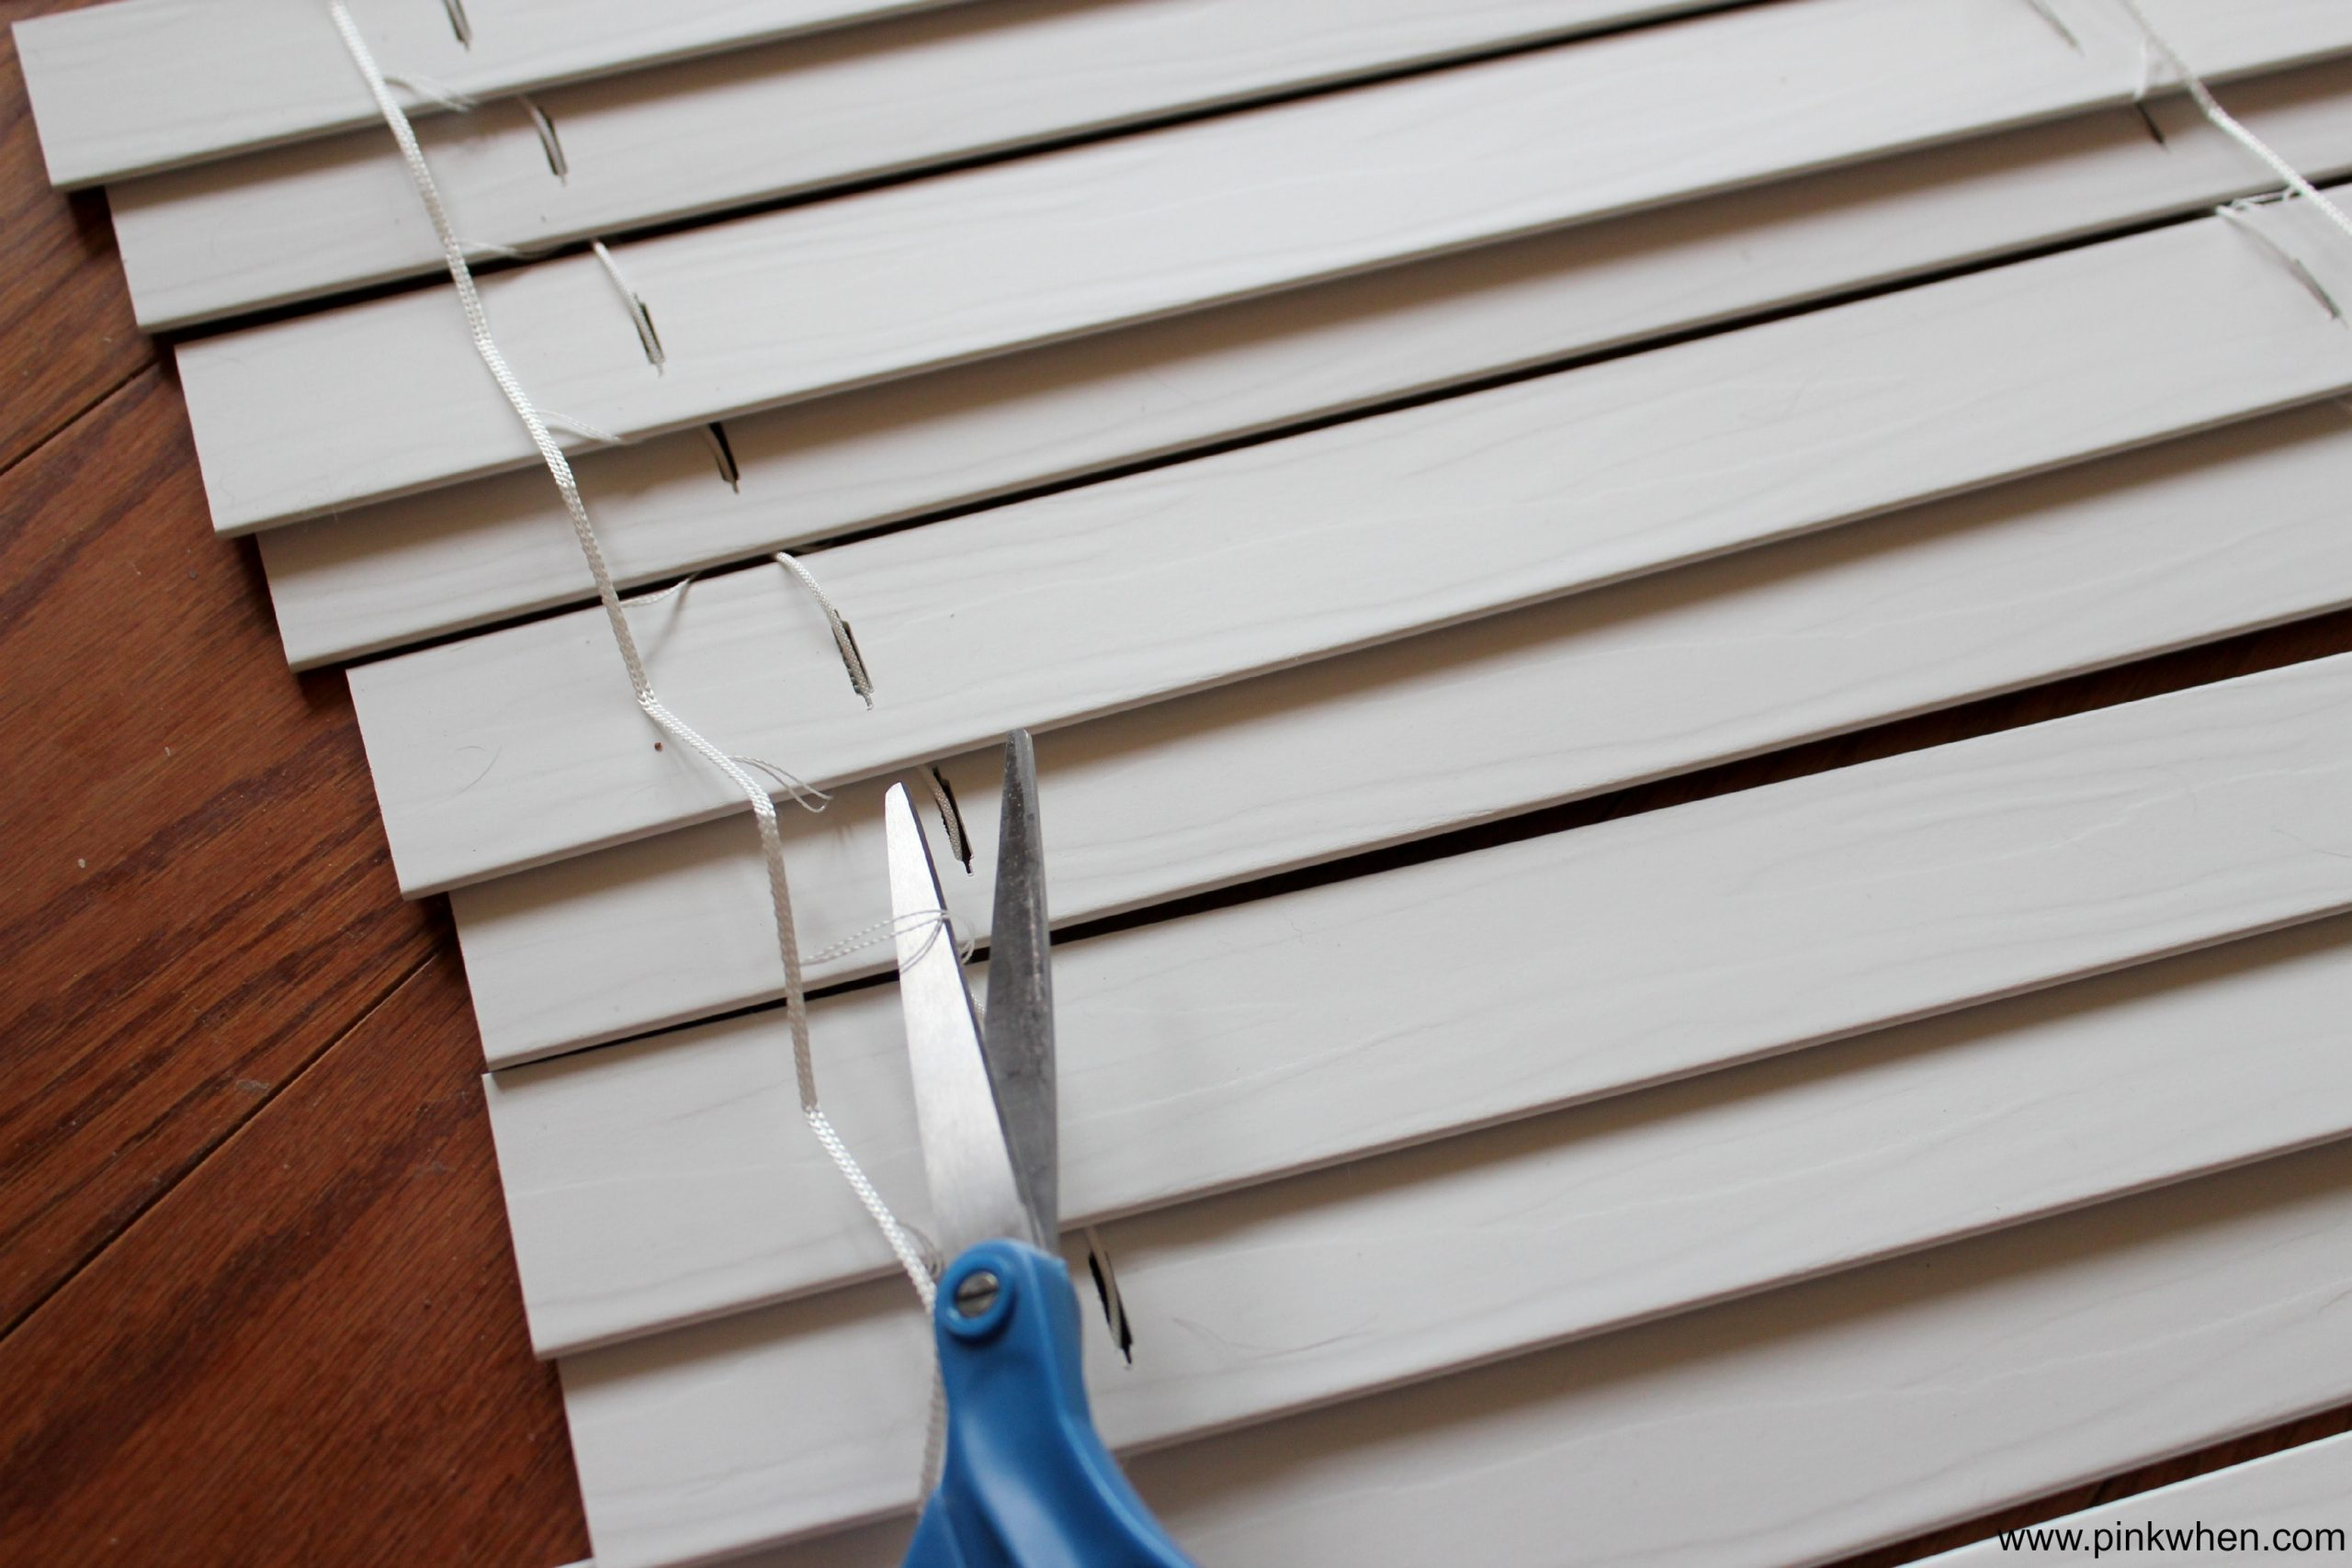 No Sew Roman Shades Tutorial - Cutting the ladder cord on the mini blinds